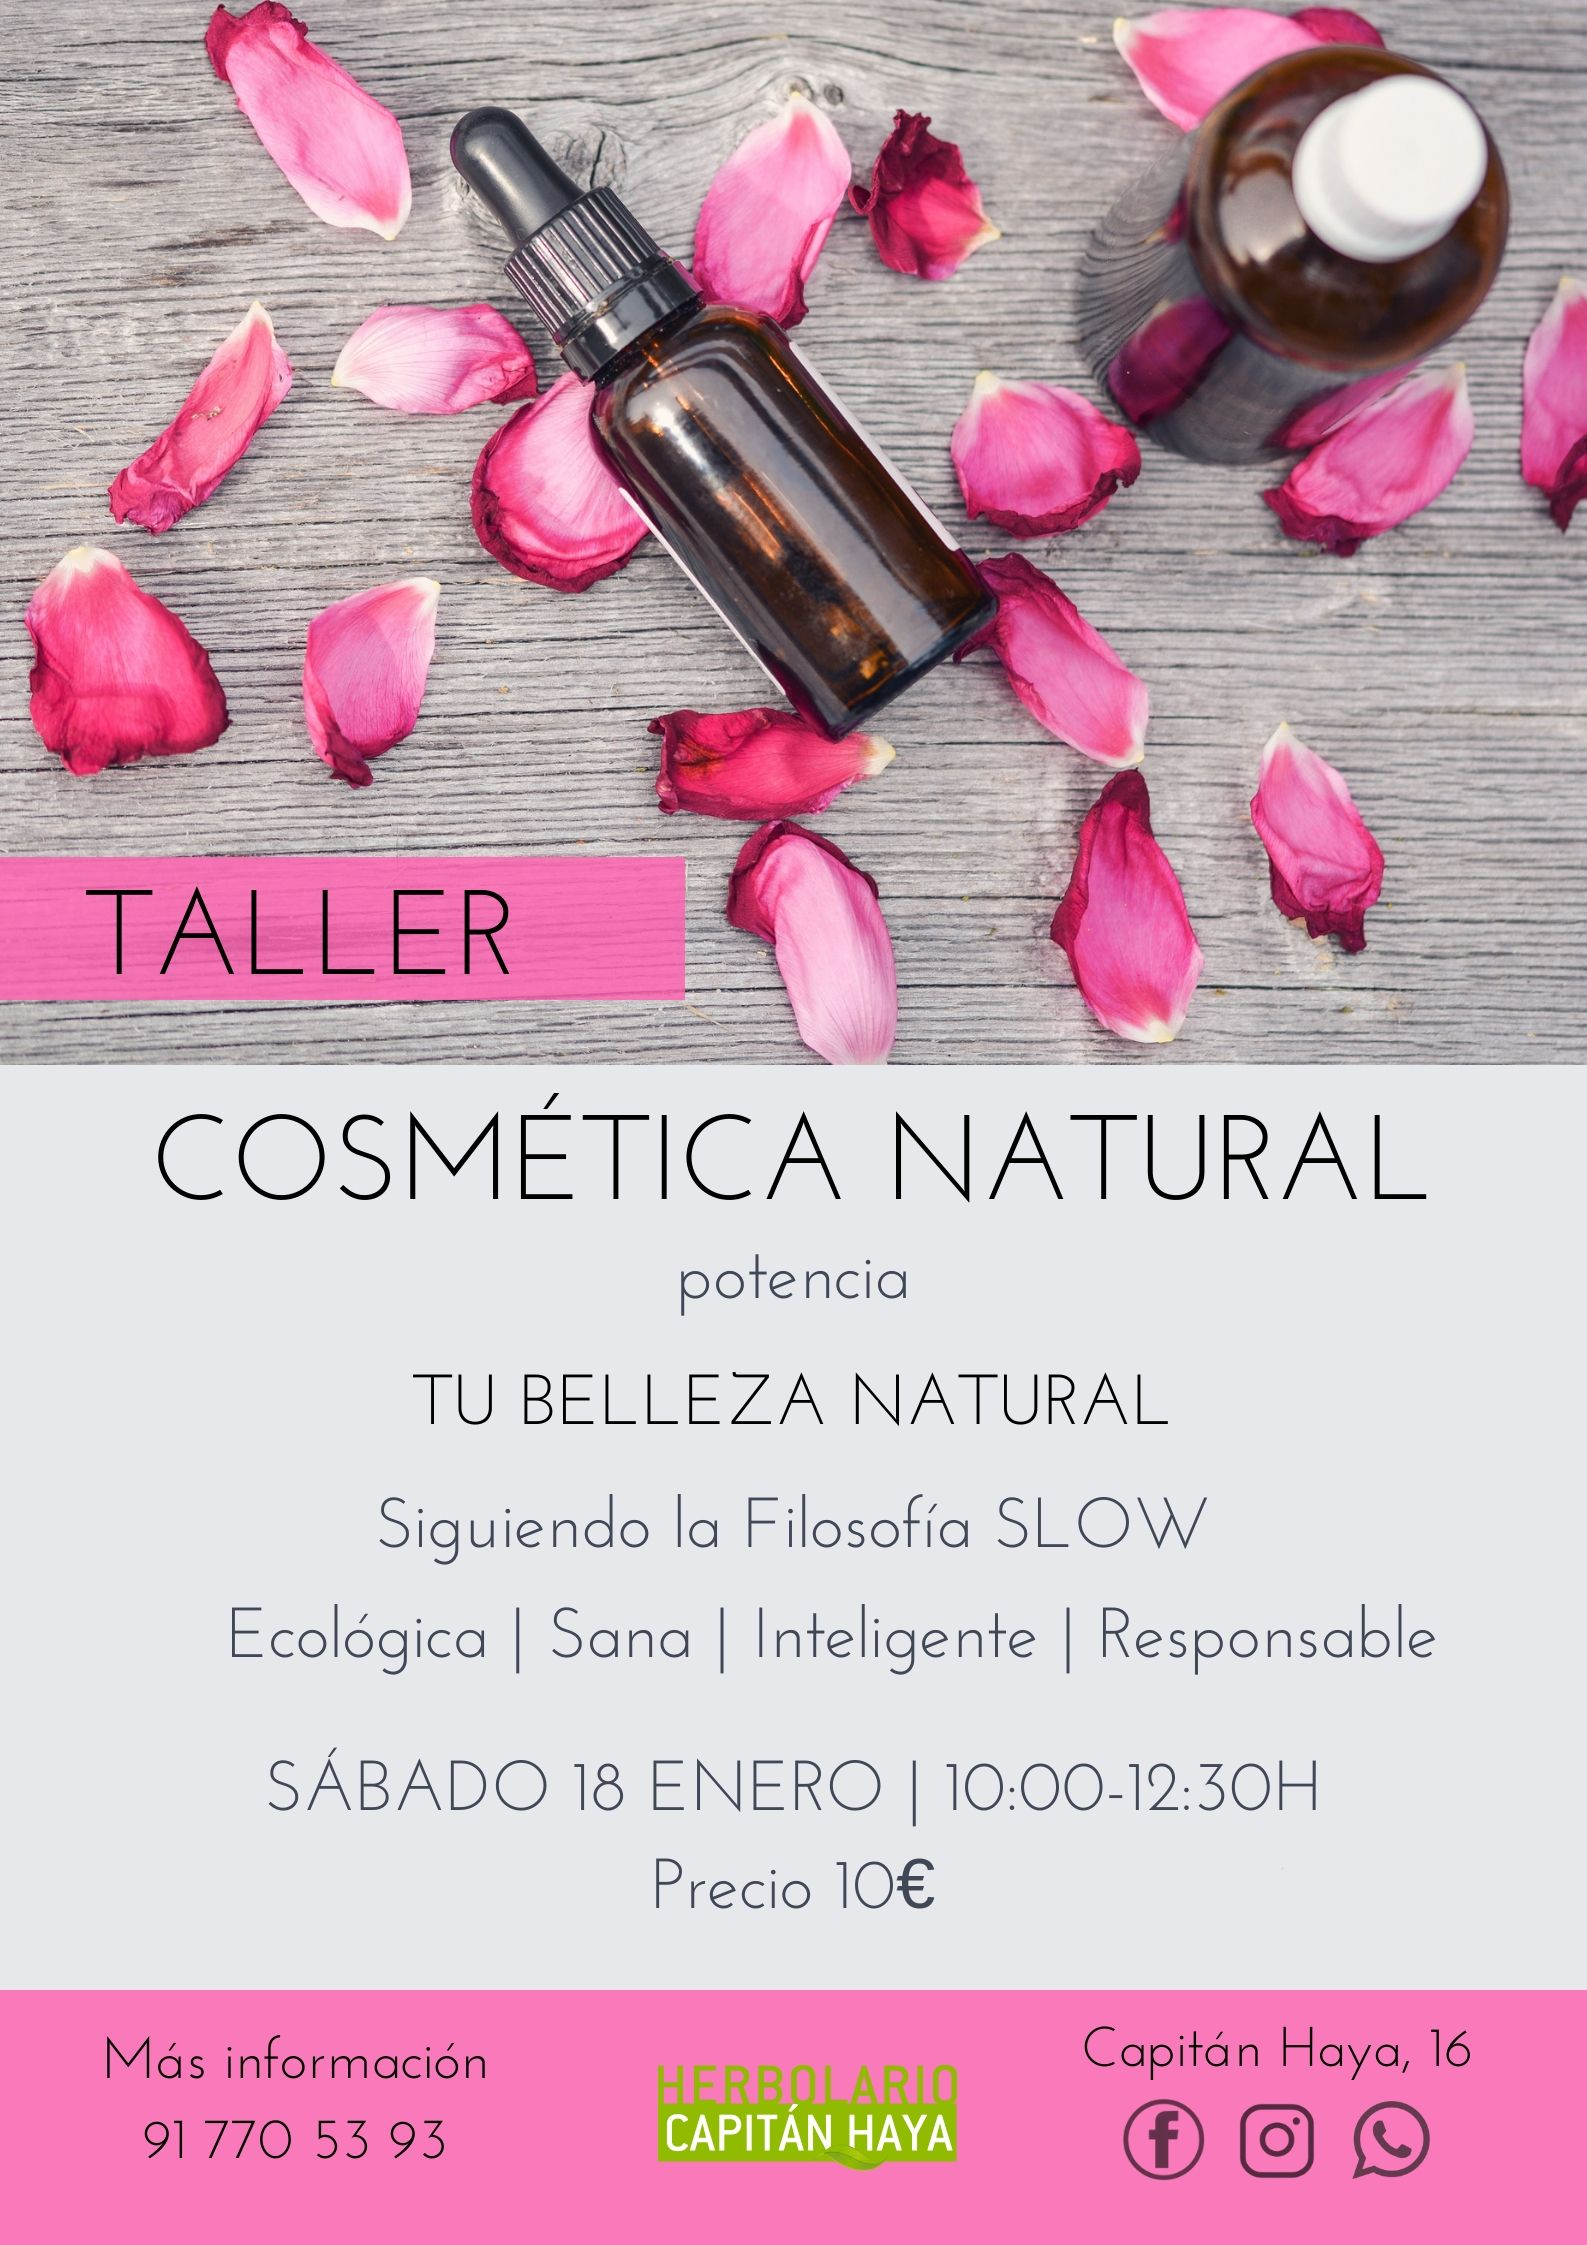 TALLER COSMETICA NATURAL